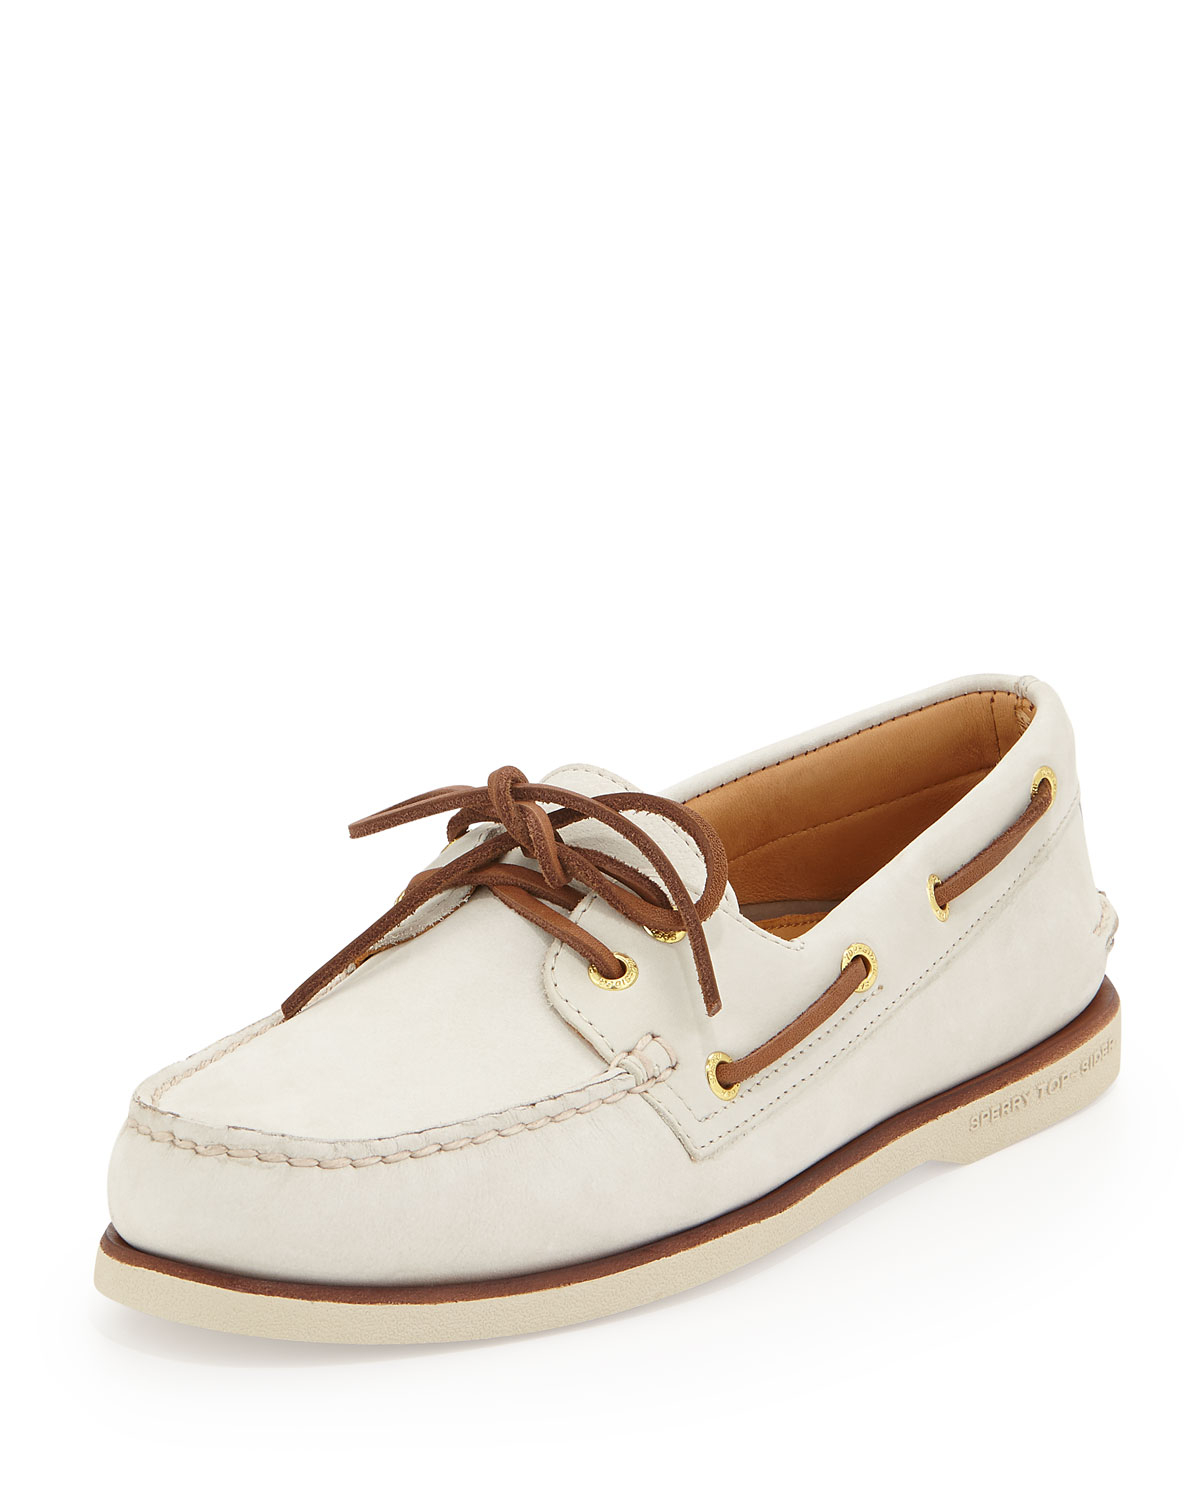 Sperry Top Sider Gold Cup  Eye Boat Shoes